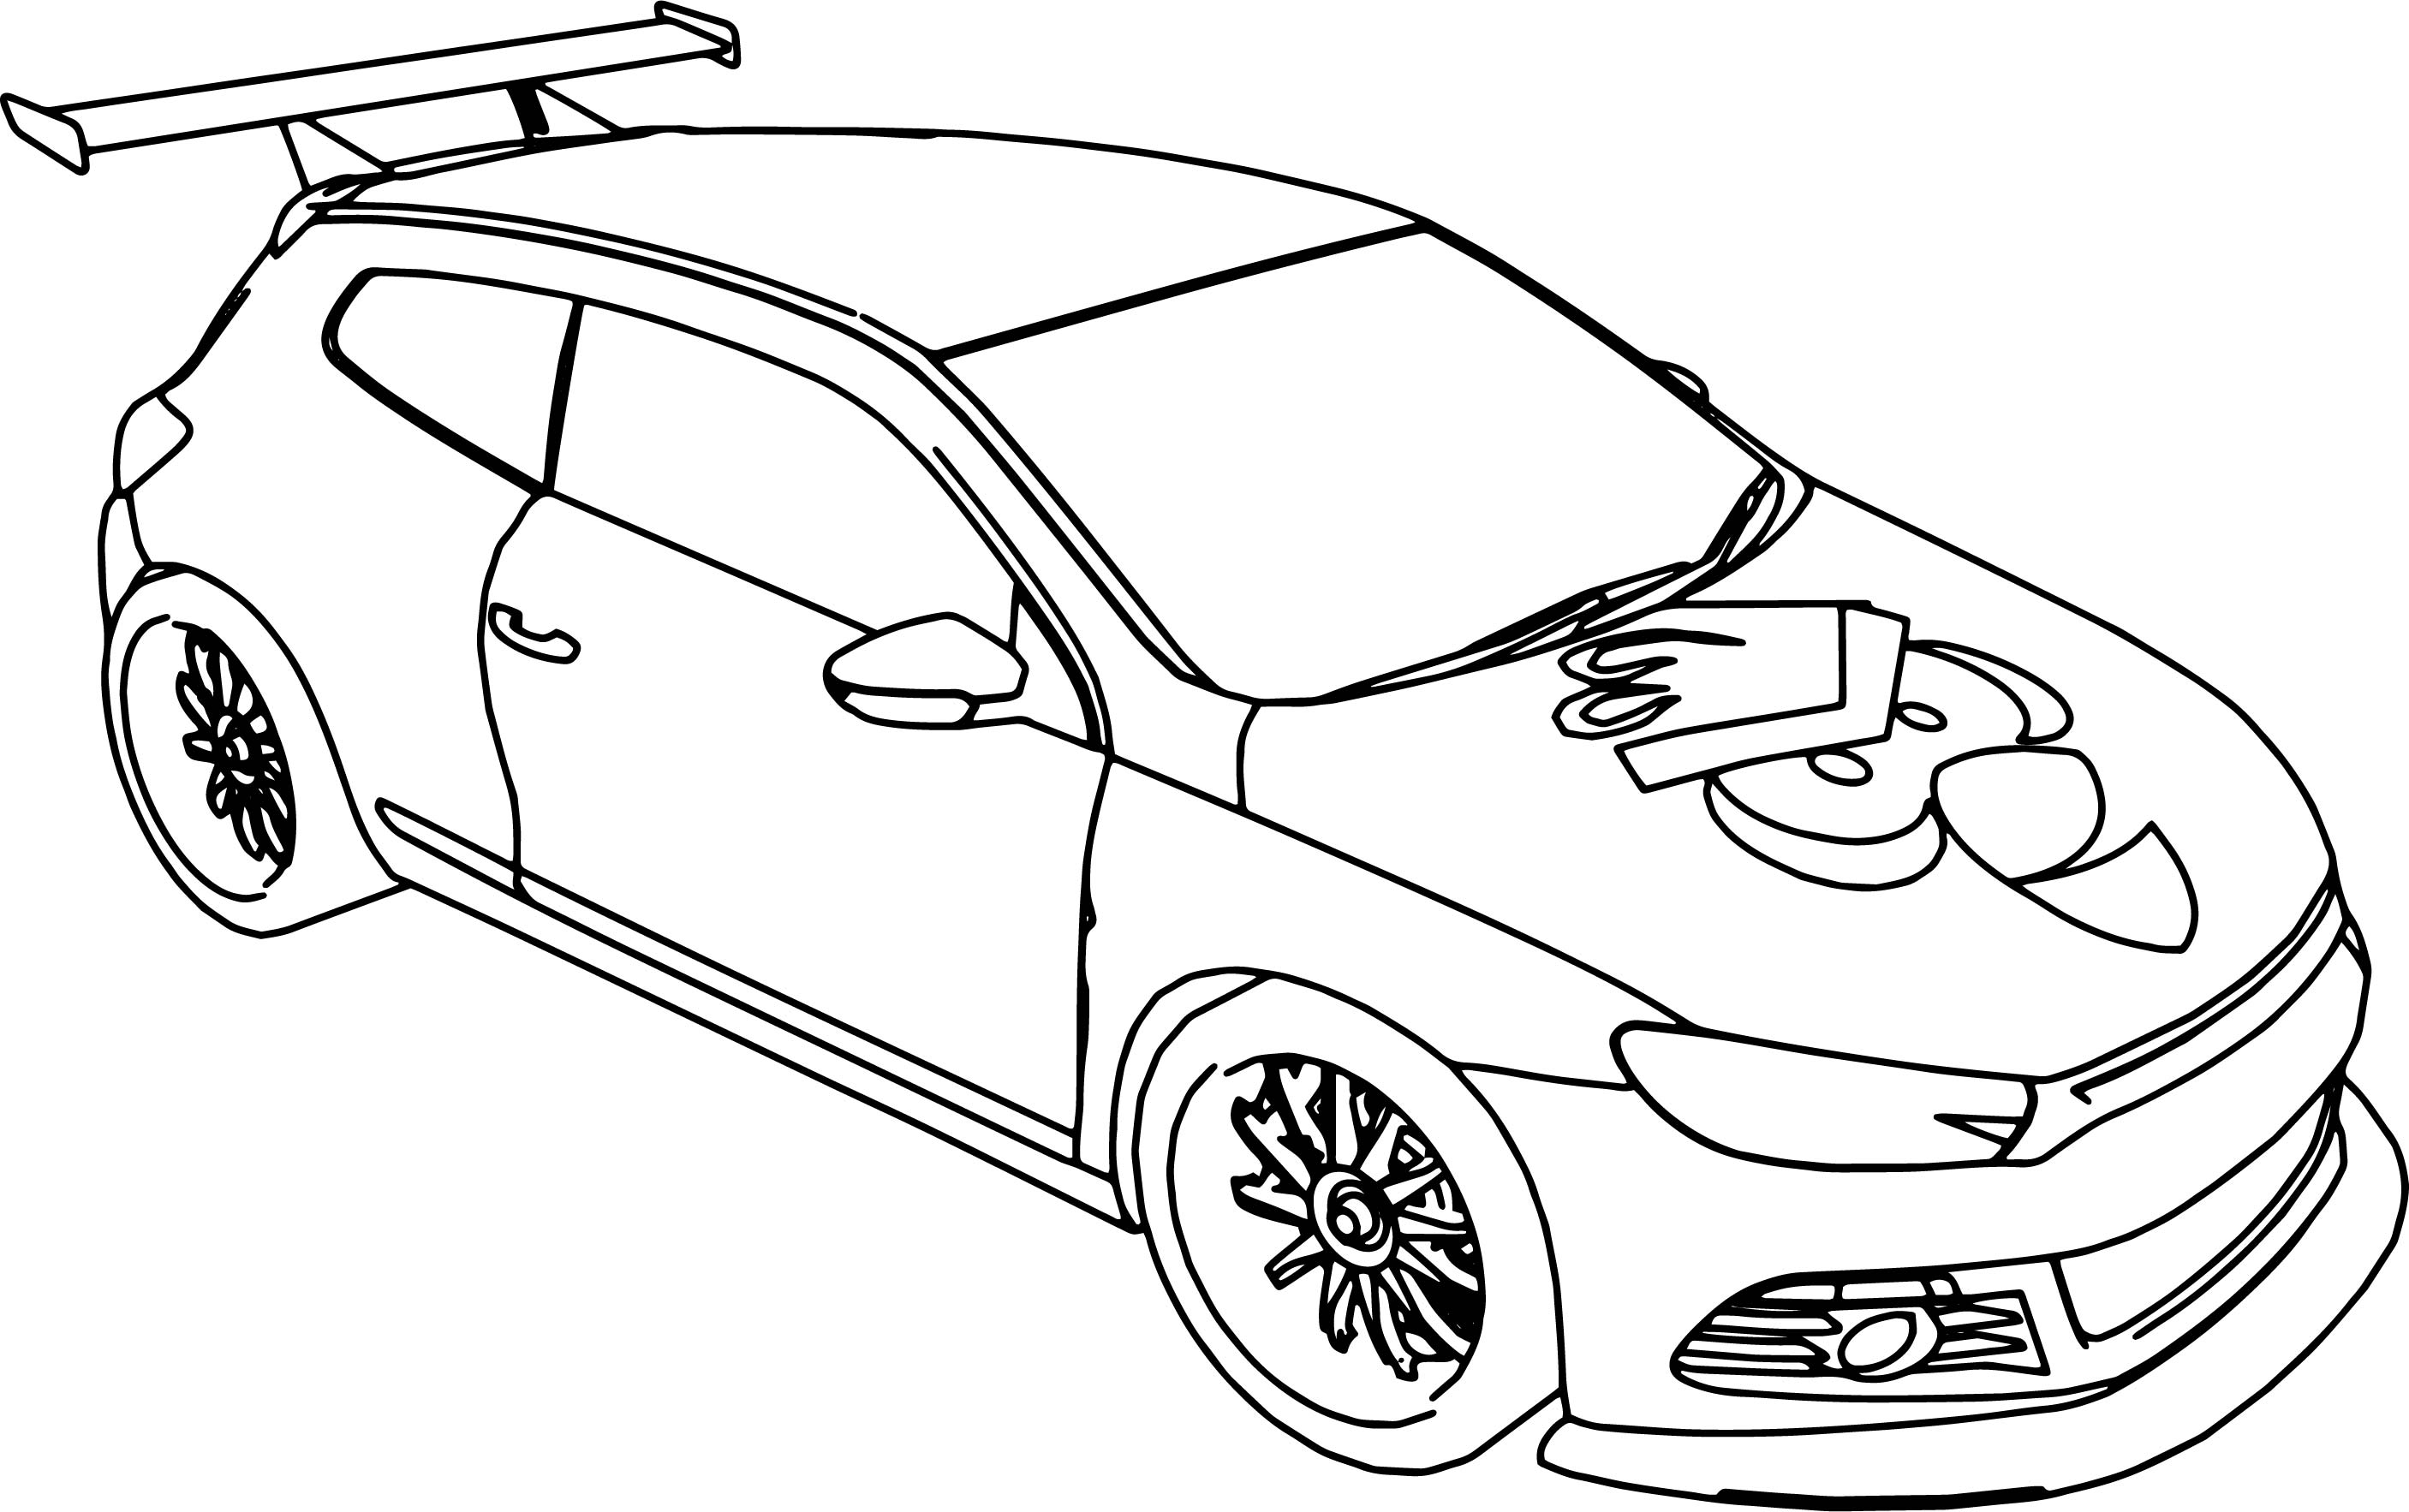 cartoon vw scirocco car angry bird coloring page